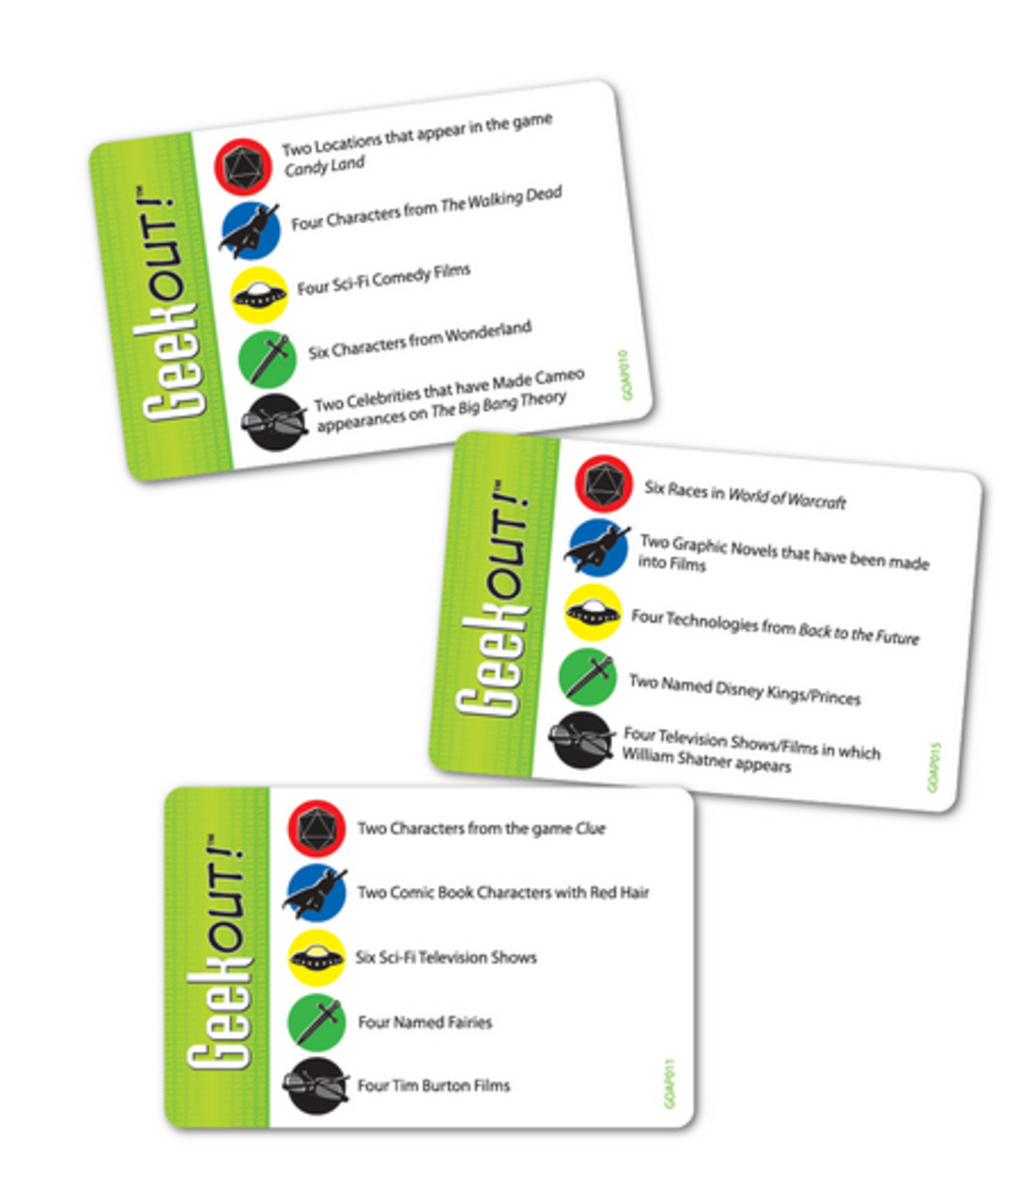 Some card examples of the Geek Out! trivia game.